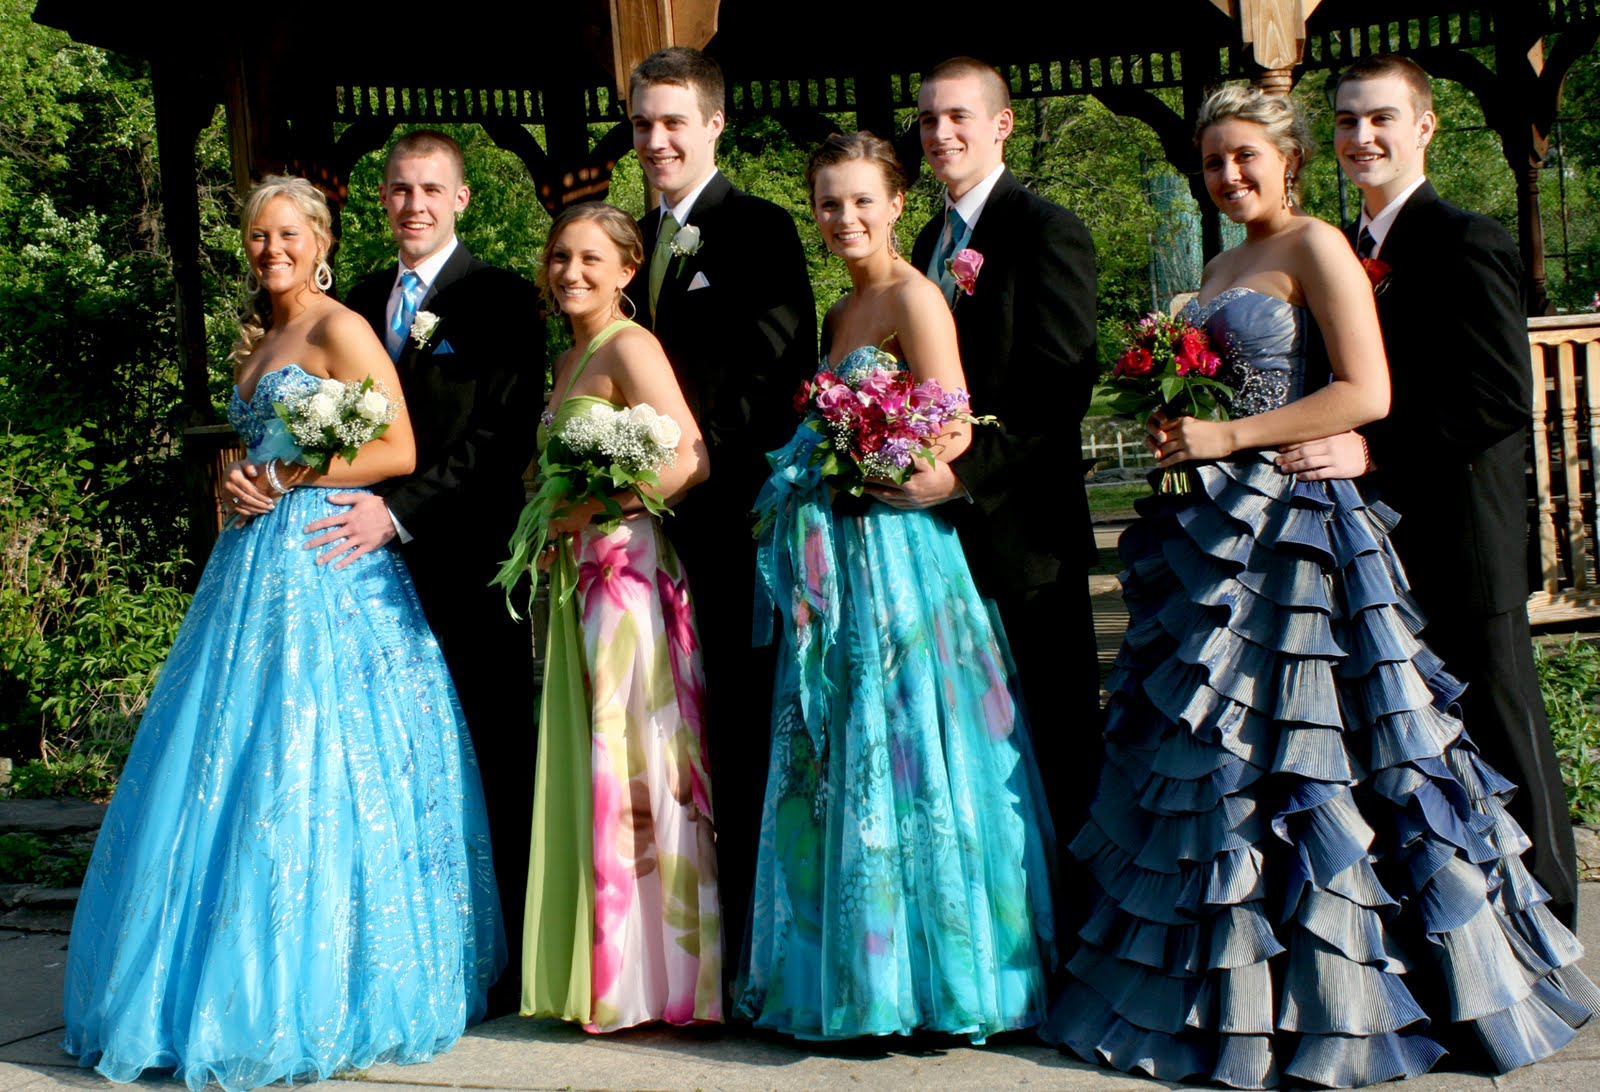 Styling in Delco: Styling at the Prom